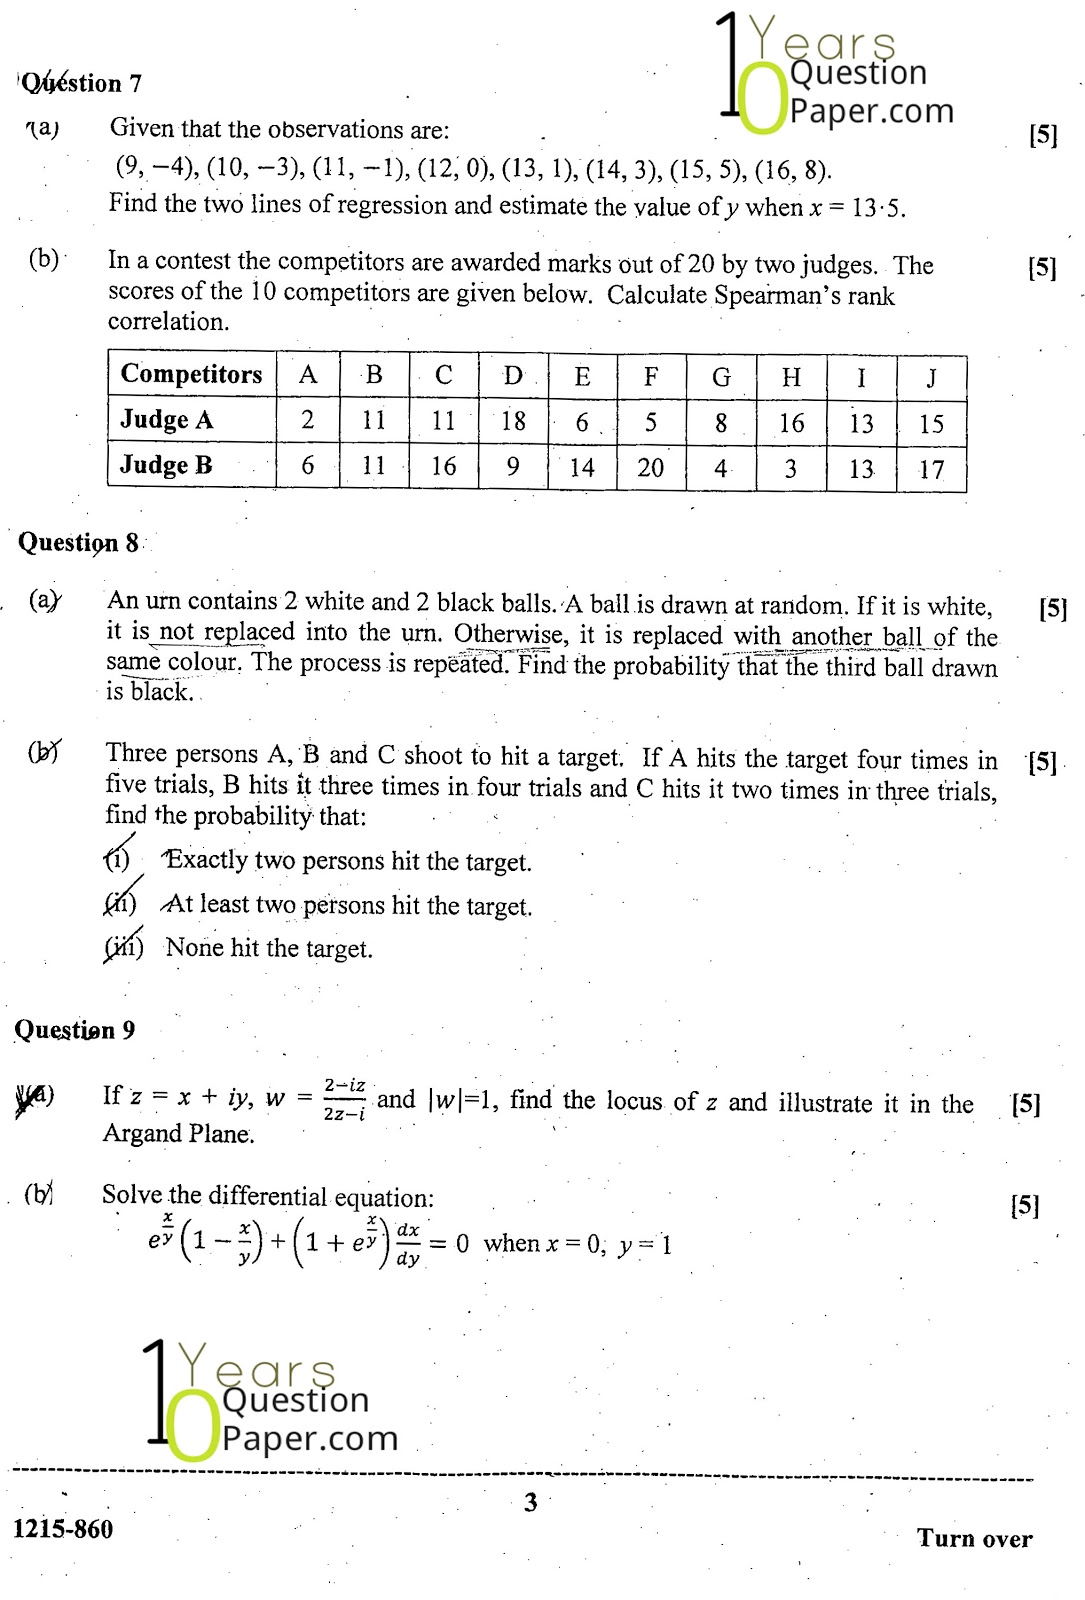 Maths Papers For 8 Year Olds